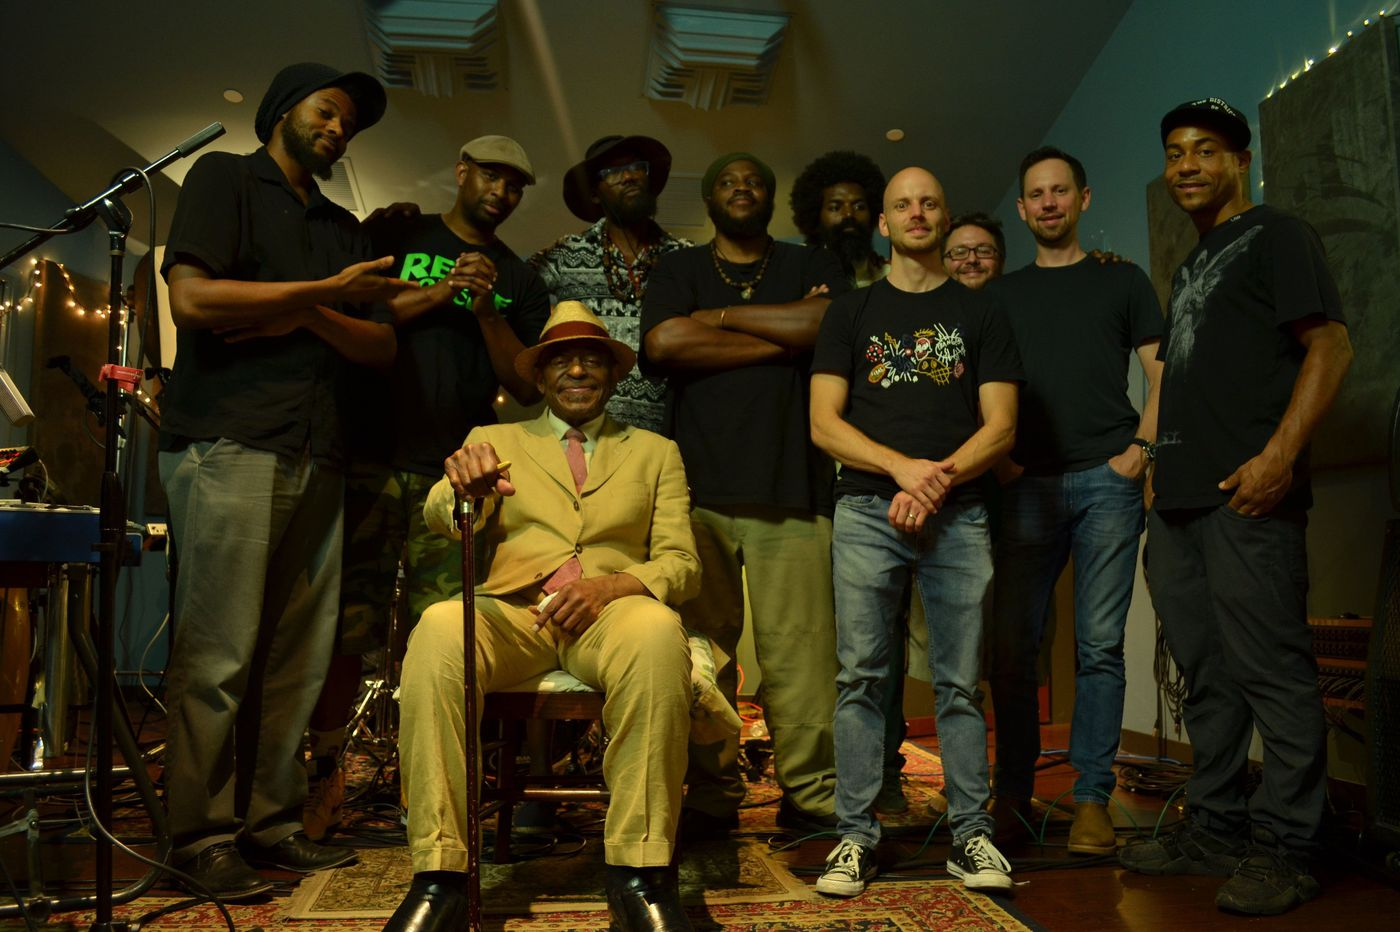 Philly jazz legend Archie Shepp and his rapper nephew Raw Poetic have a new cross-generation project